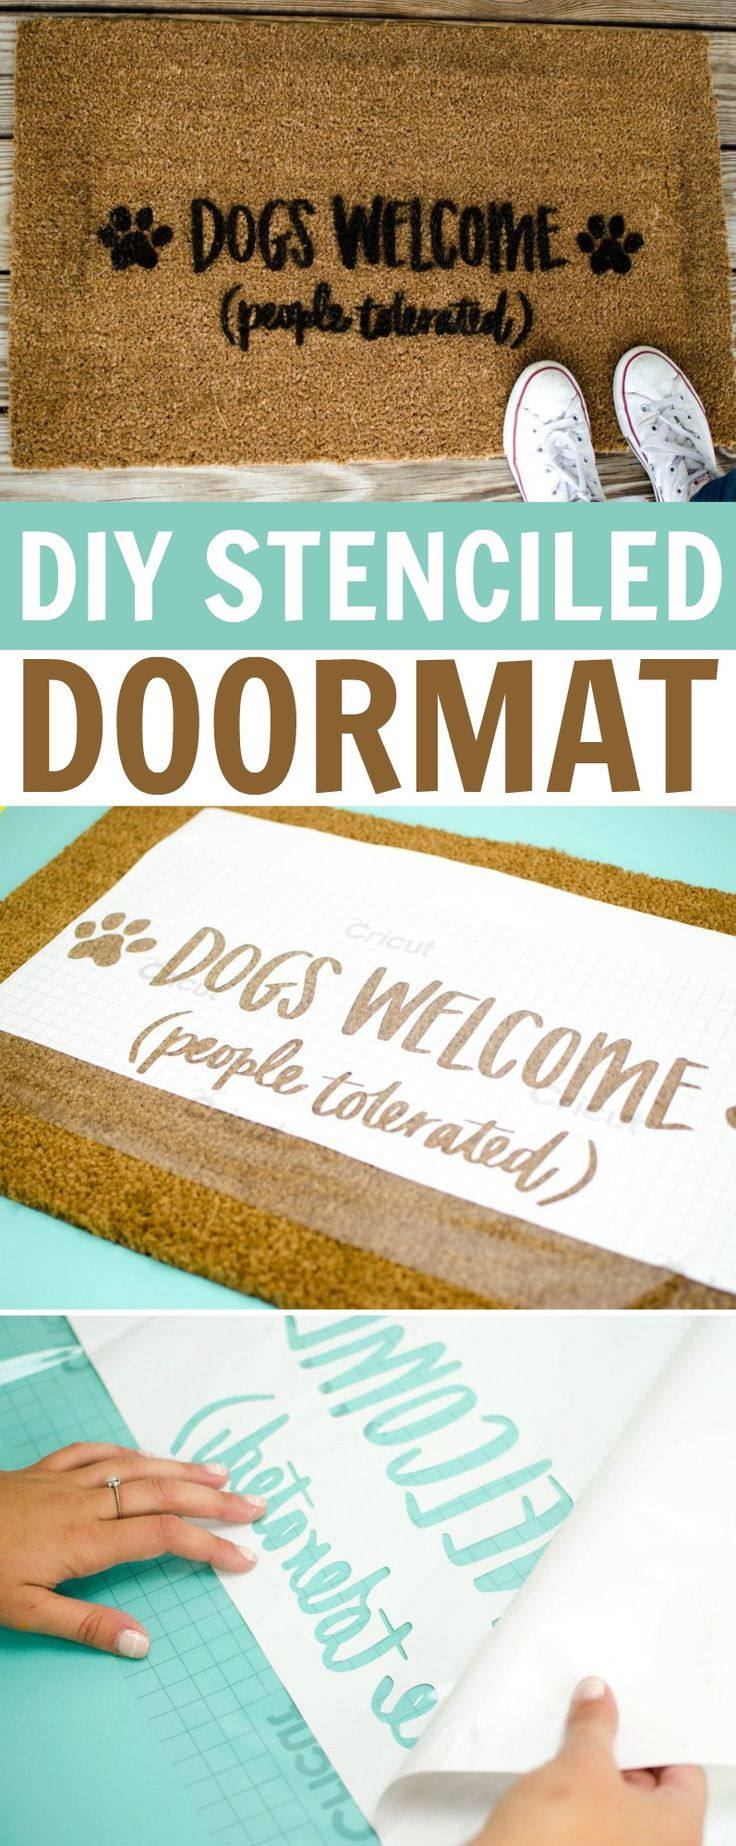 Every time a guest walks in your door, the personalized DIY Stenciled Doormat w...